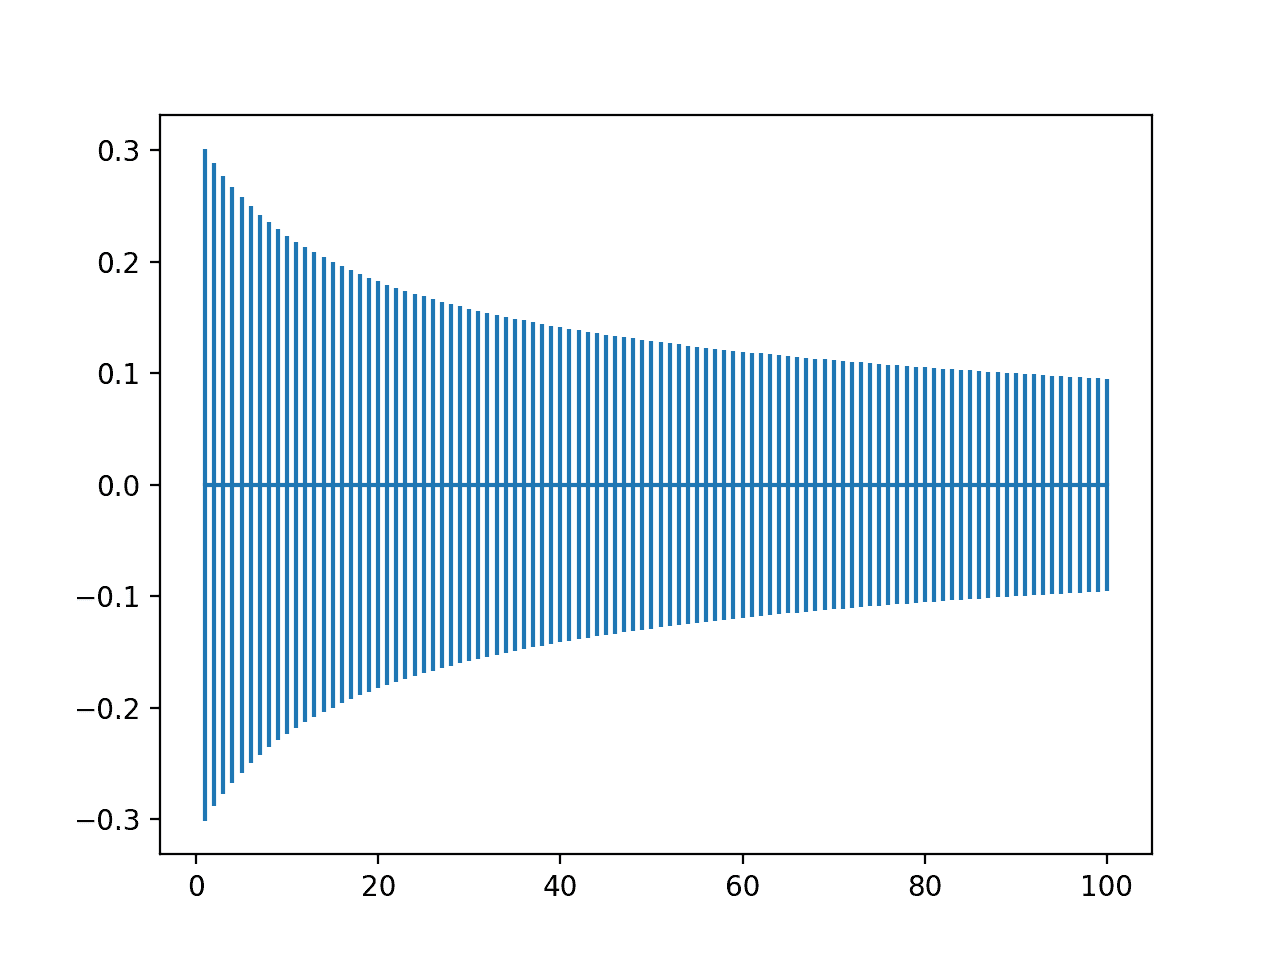 Plot of Range of Normalized Xavier Weight Initialization With Inputs From One to One Hundred